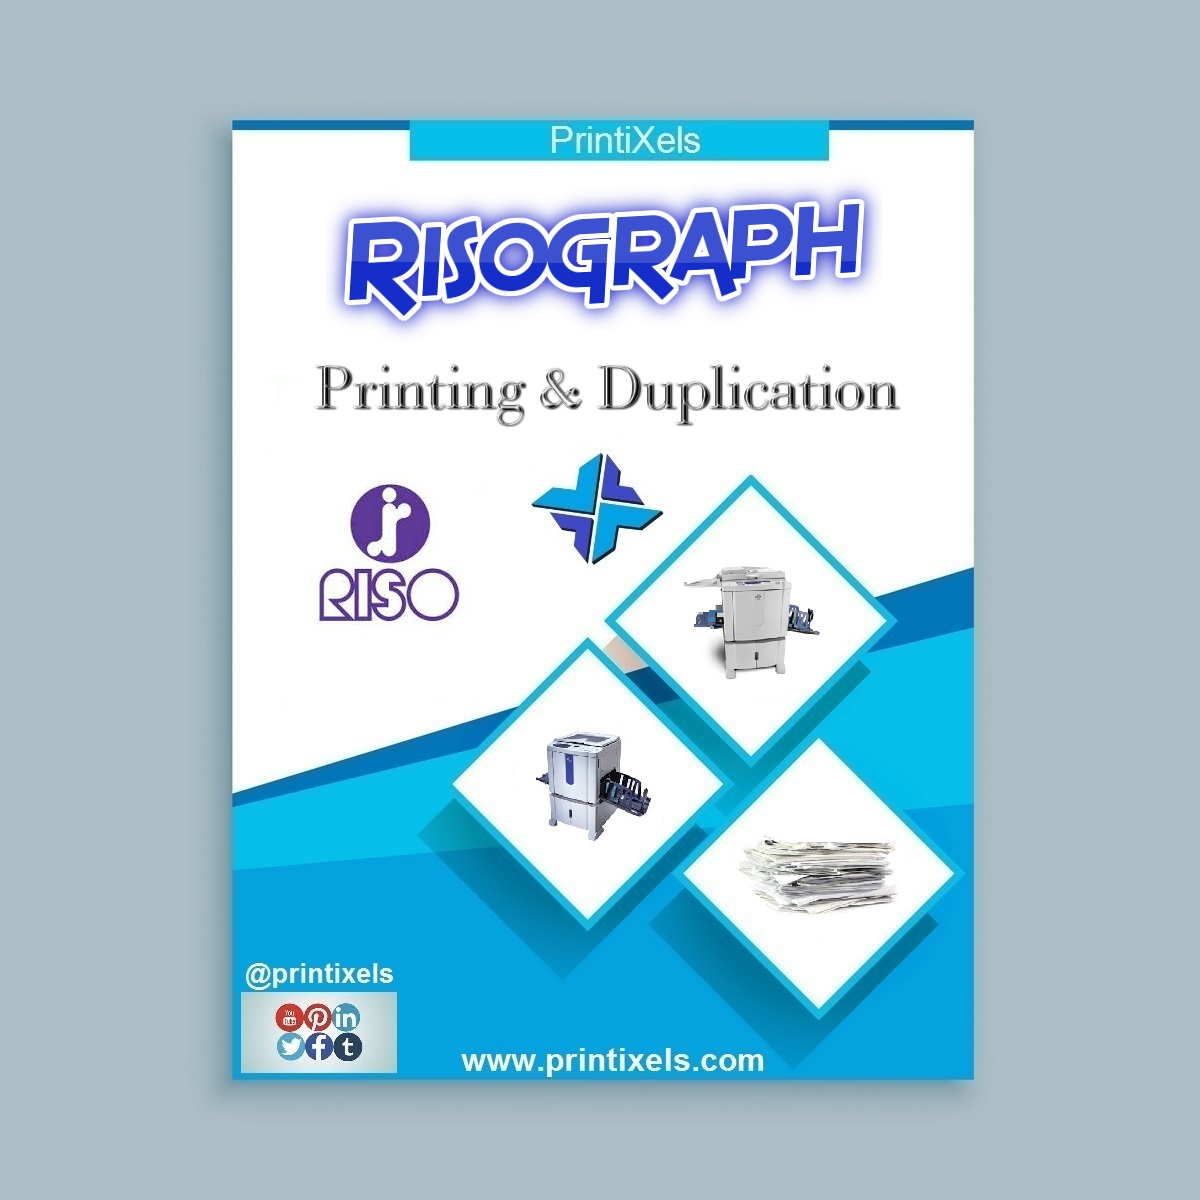 Risograph Printing & Duplication Services in Cavite